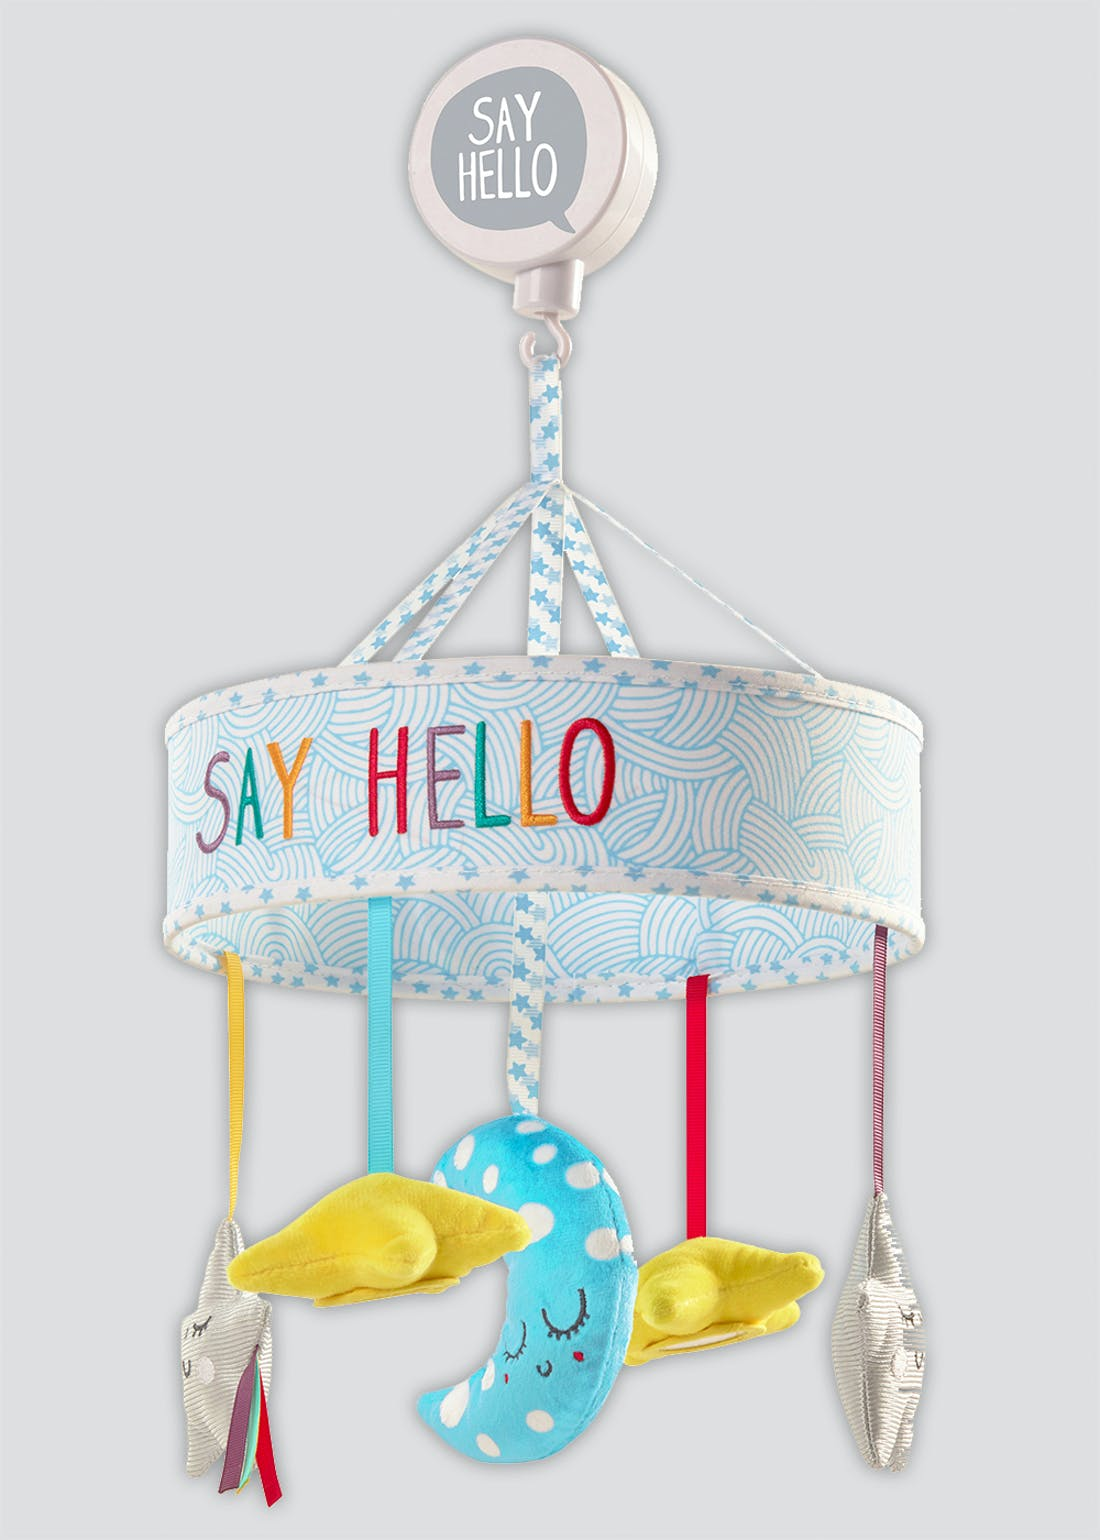 Baby Sensory Say Hello Cot Mobile